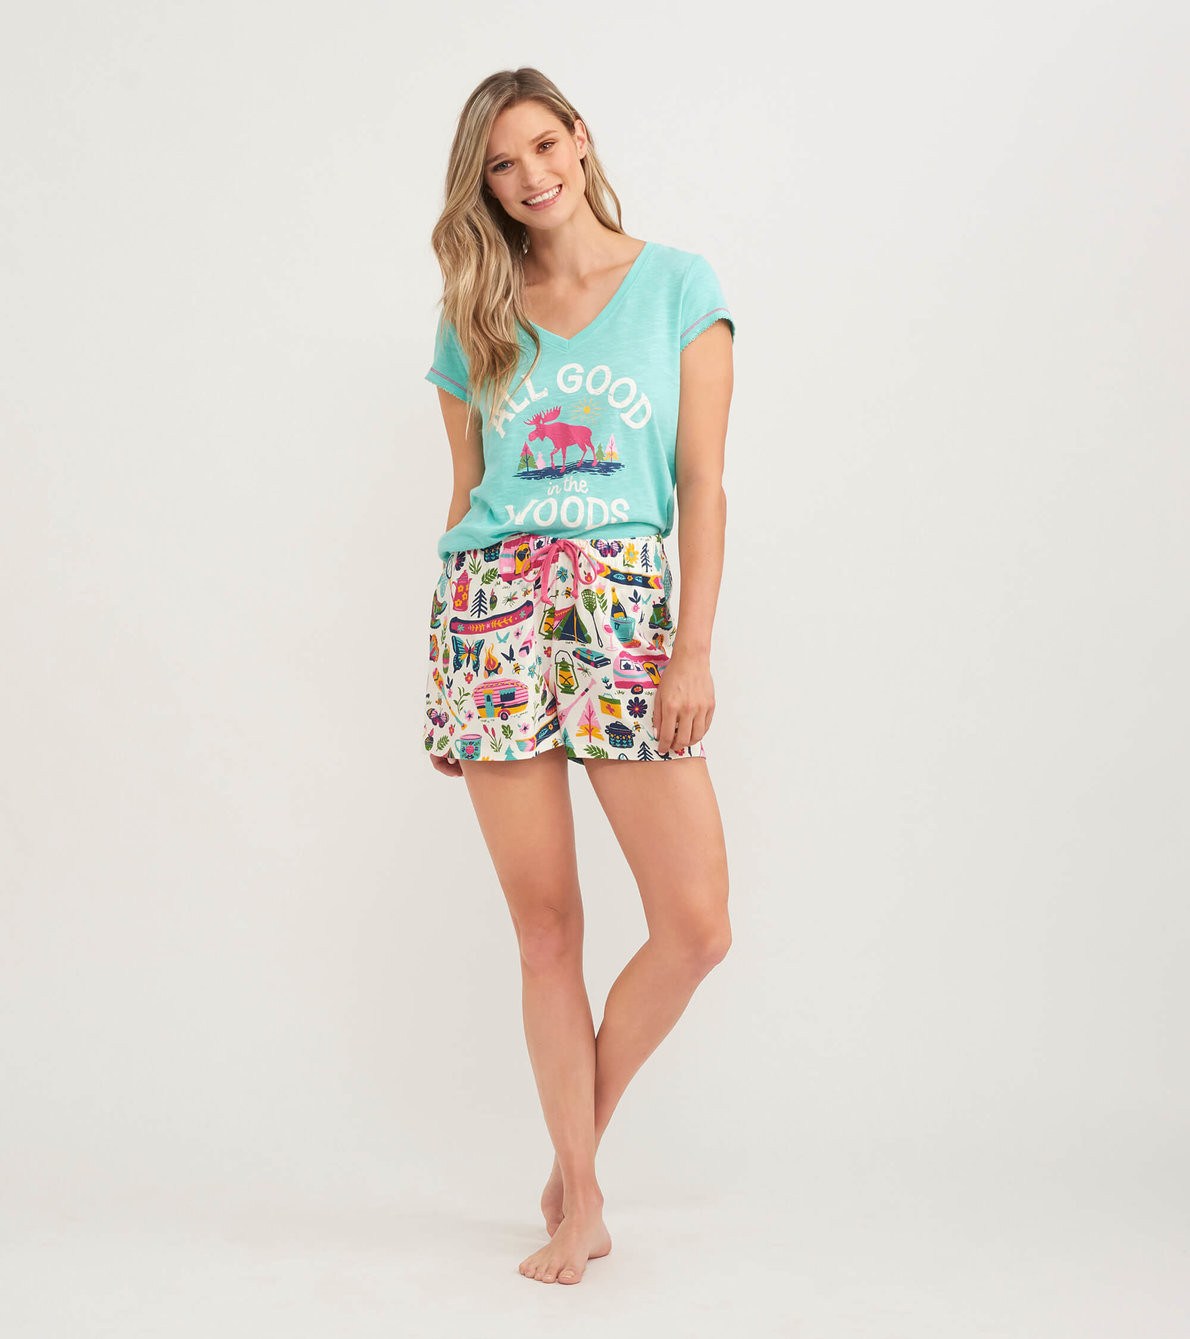 View larger image of Glamping Women's V-Neck Tee